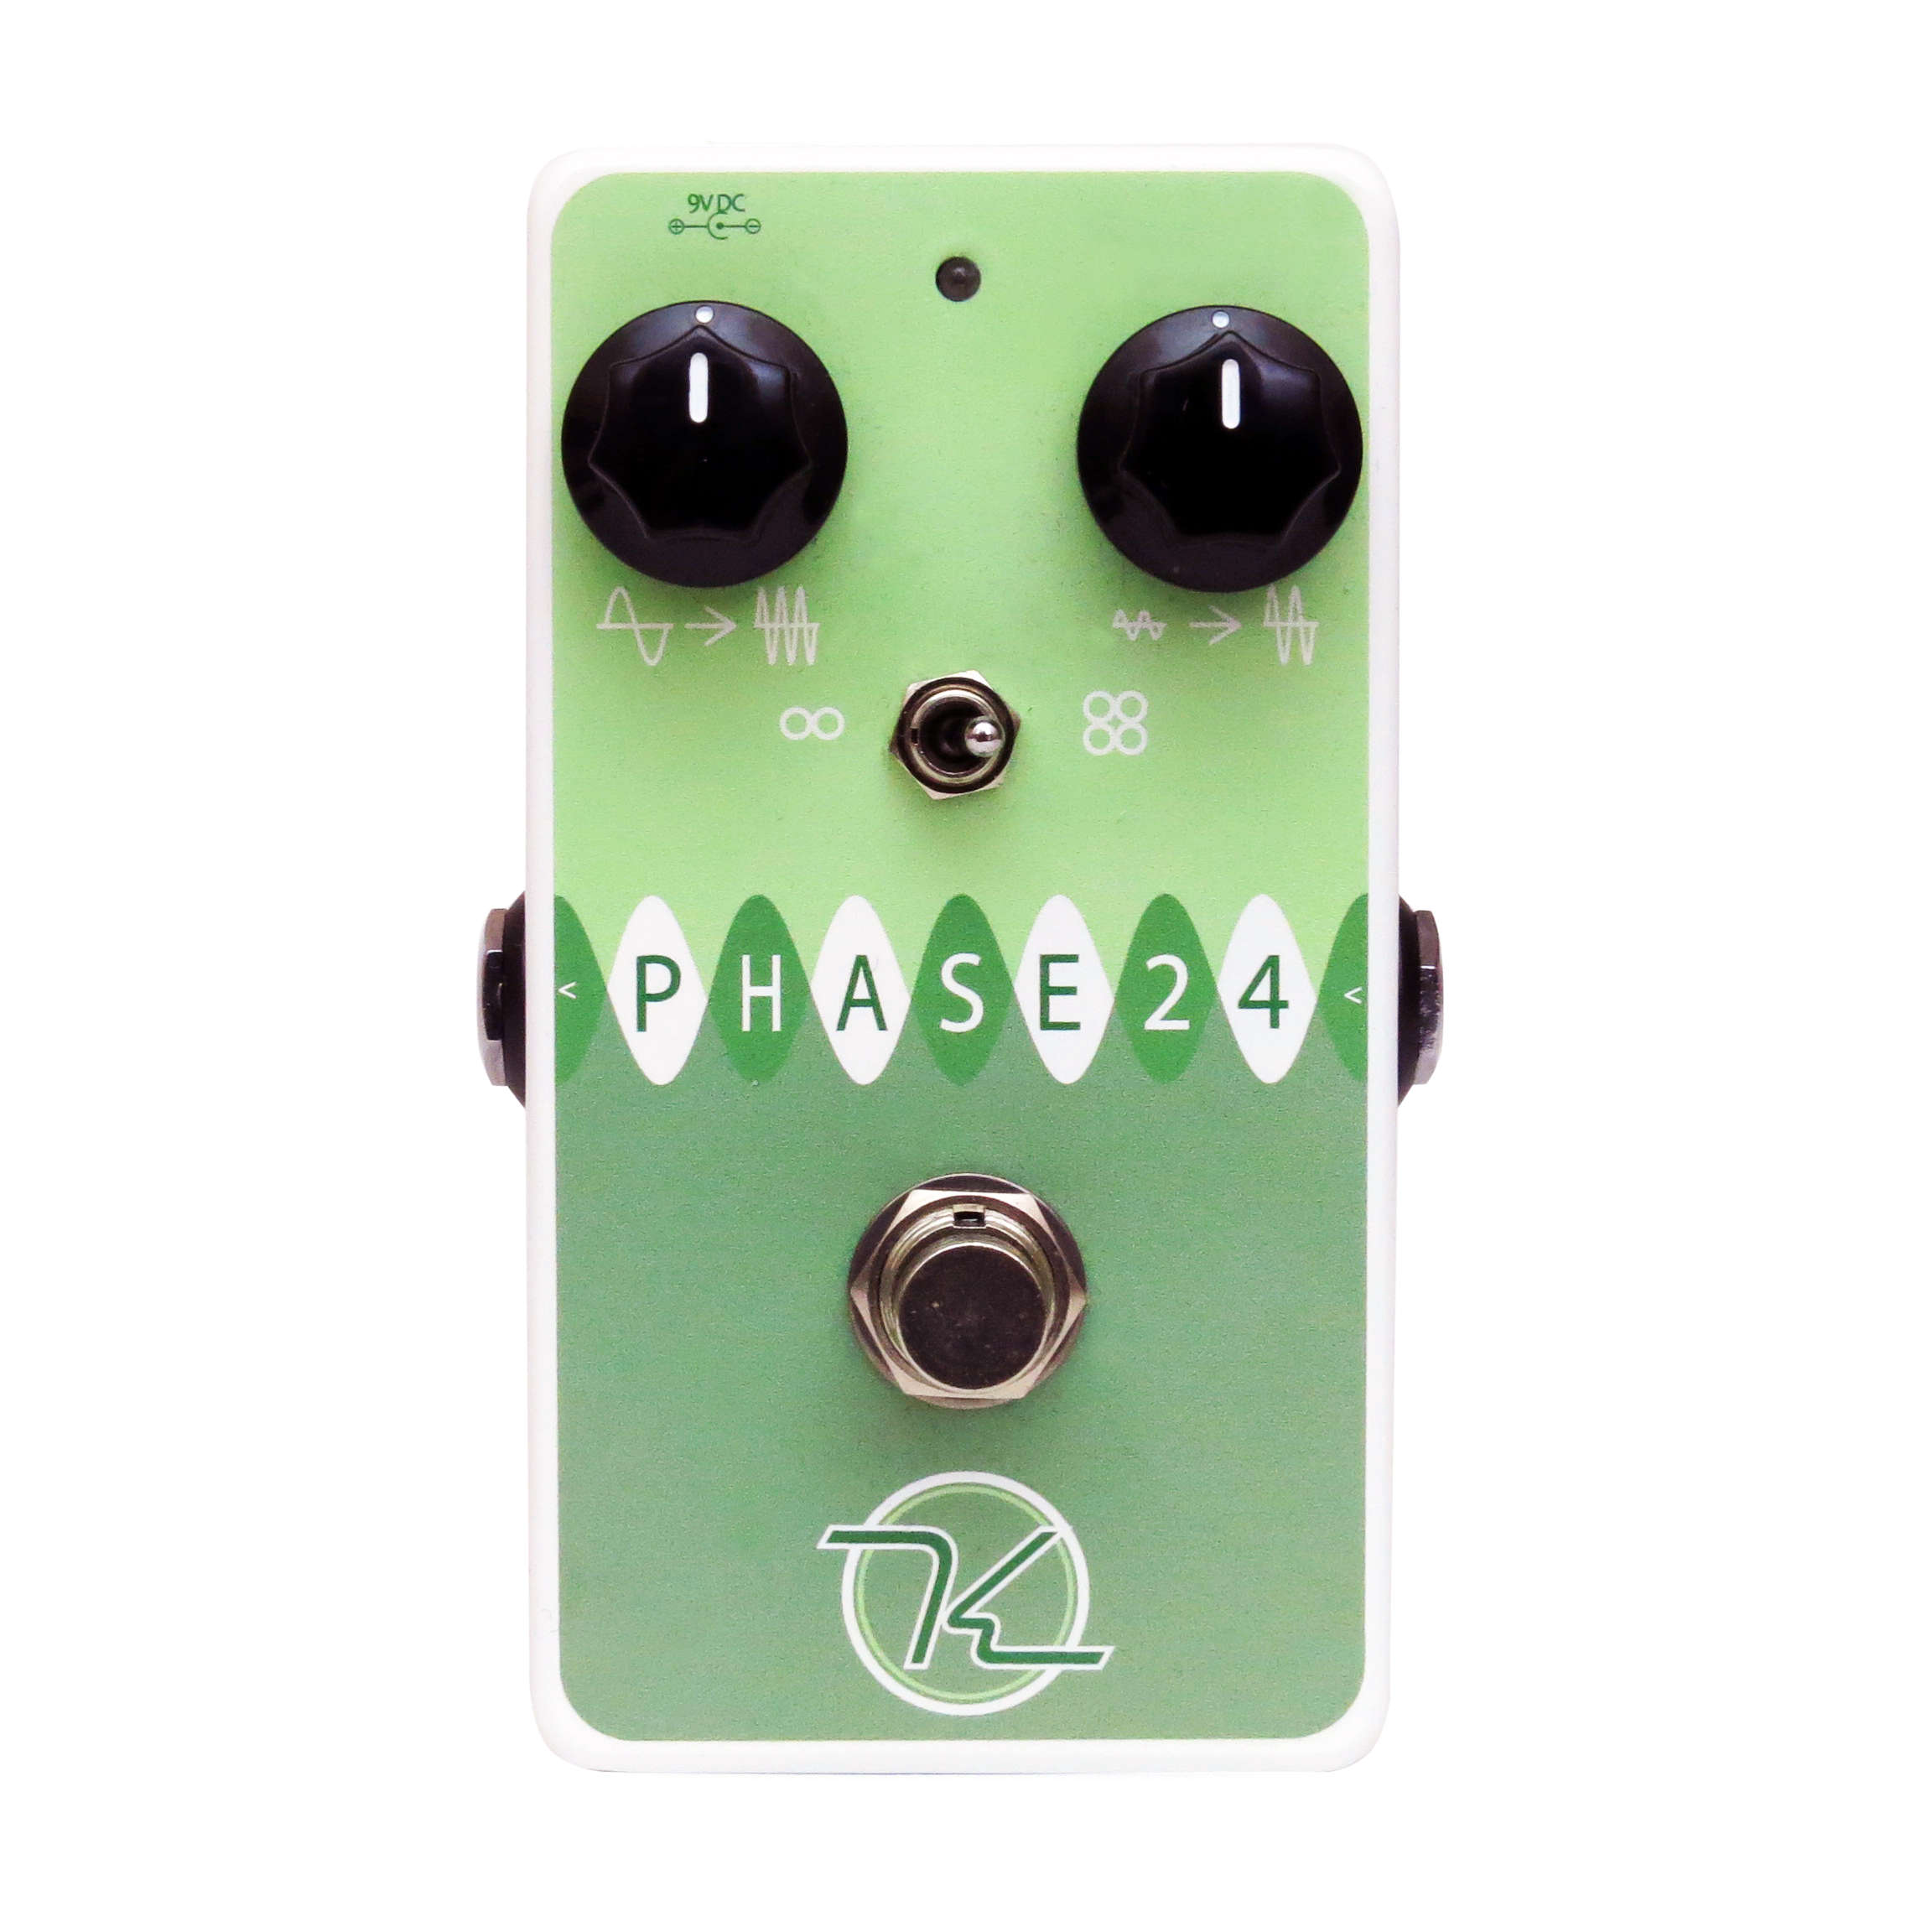 Keeley Phase 24 Phaser Effect Pedal